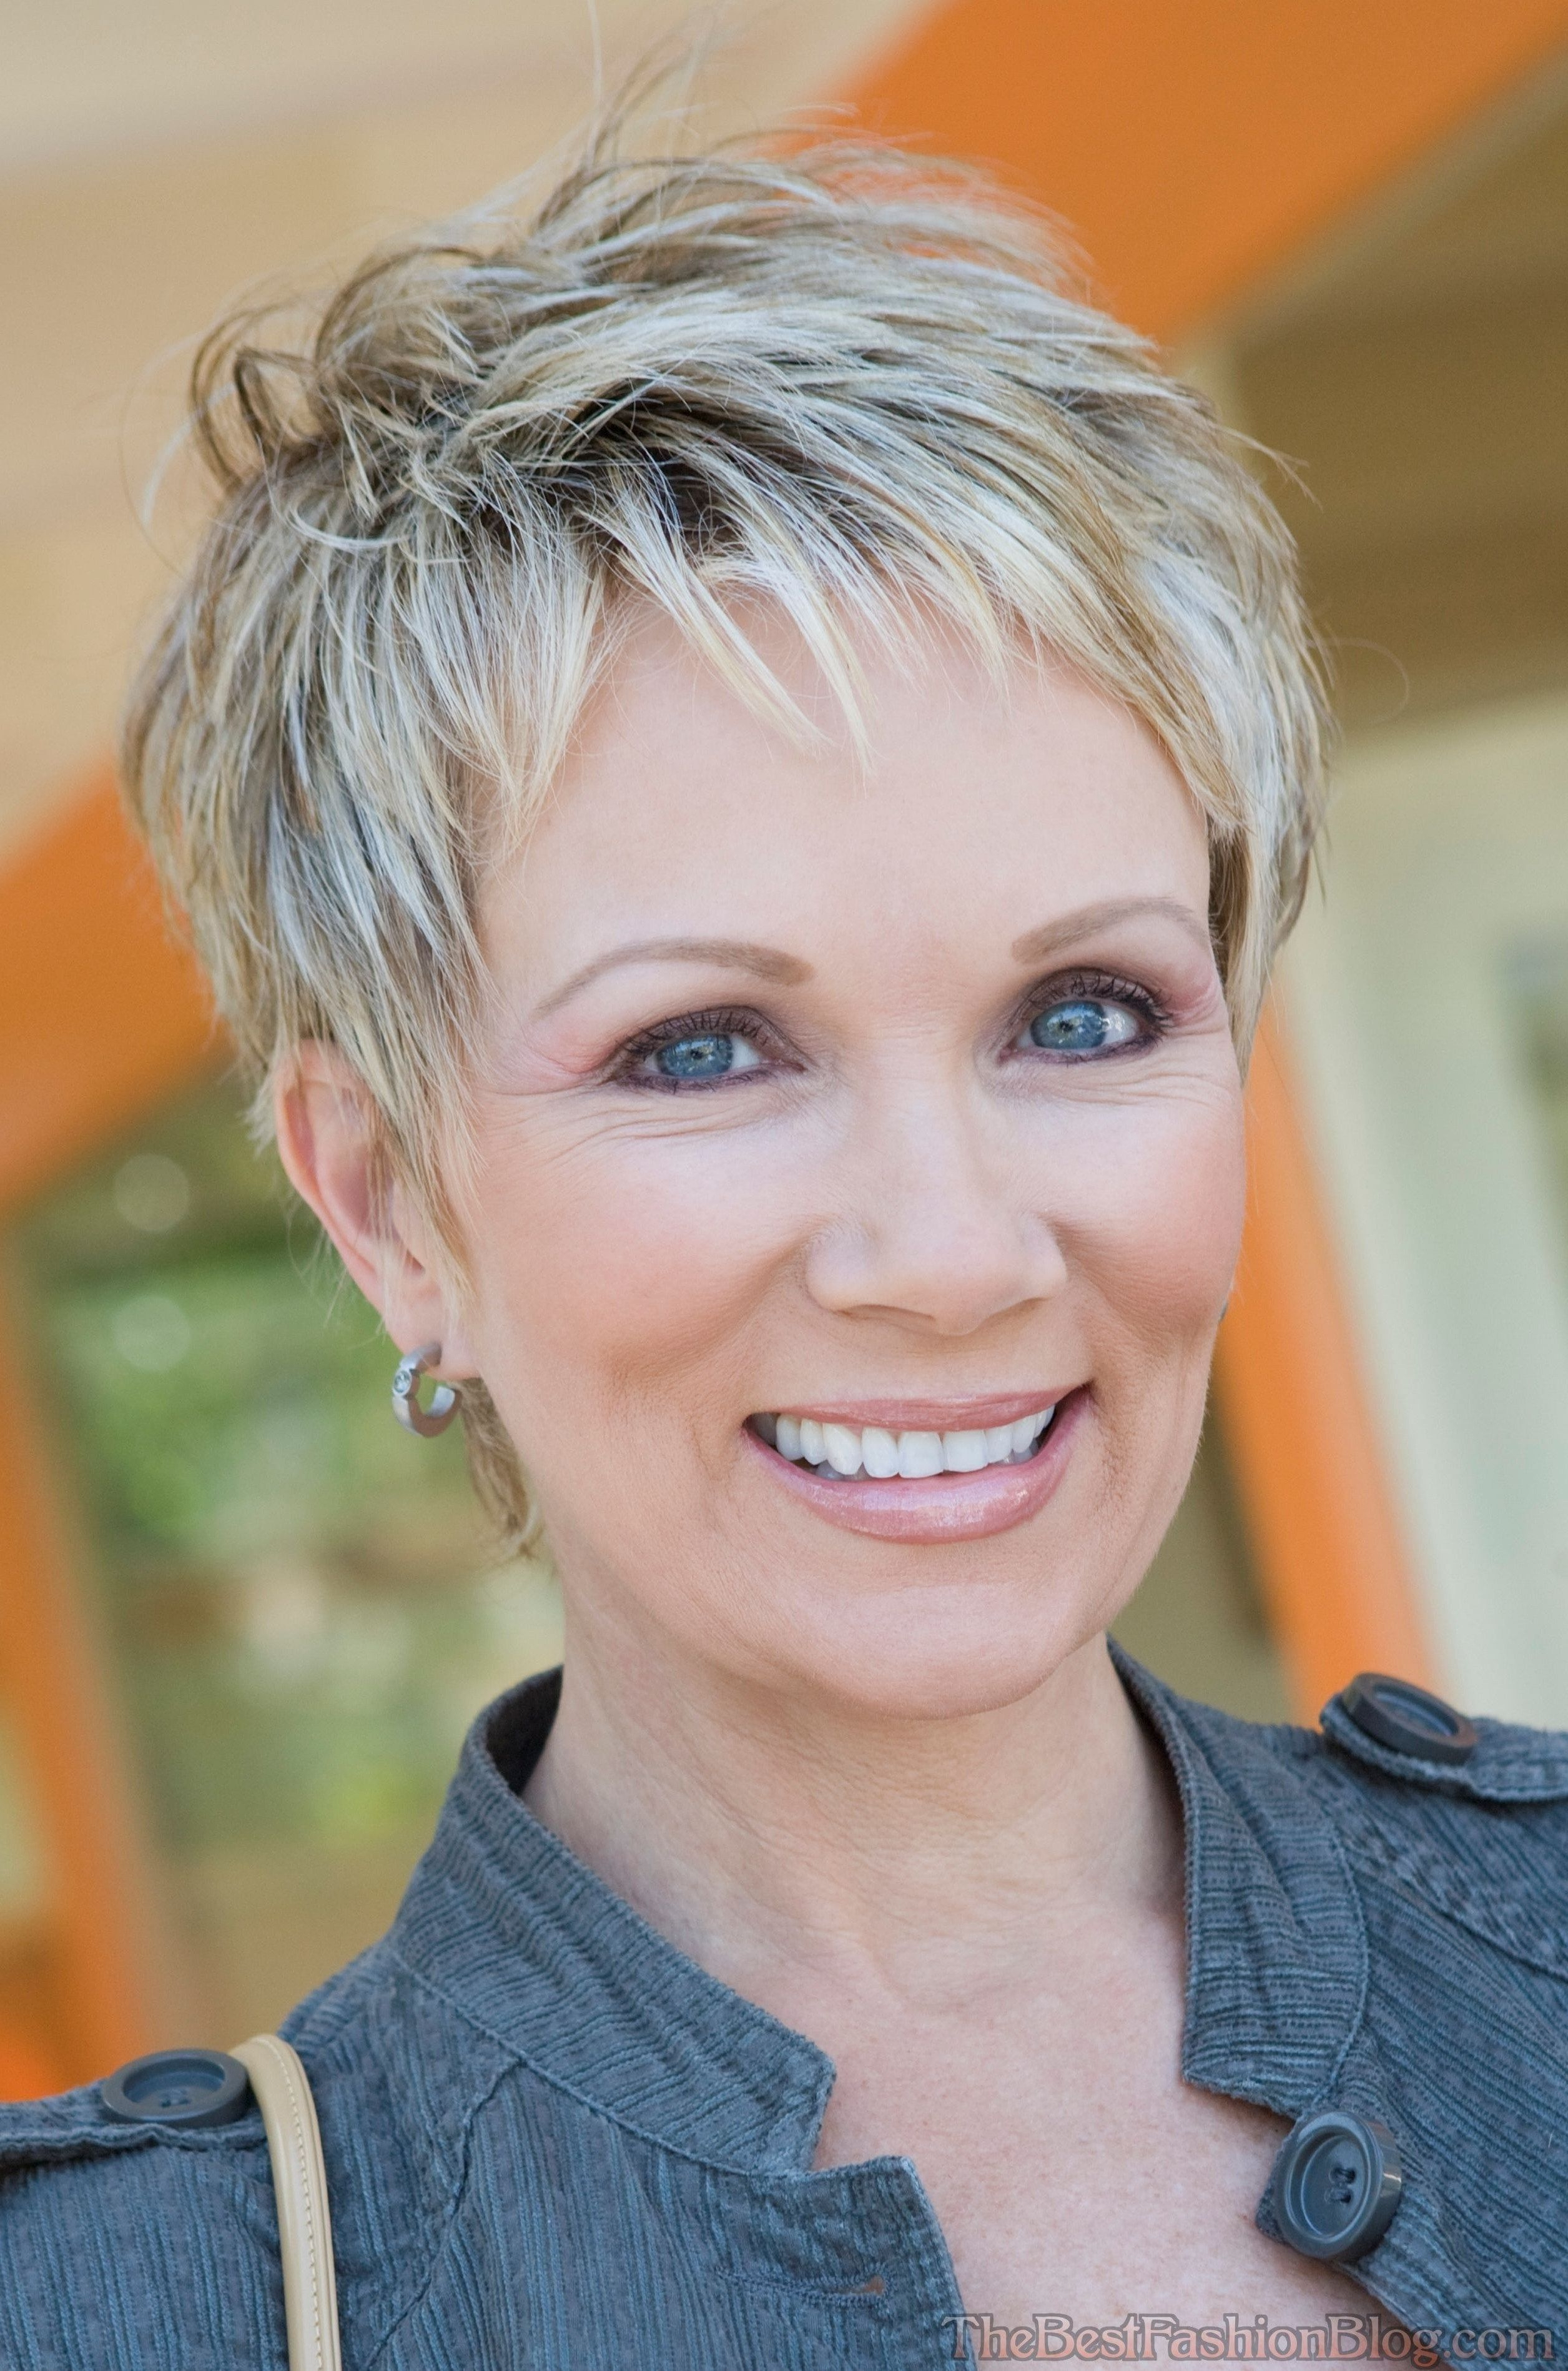 Shaved Short Hair Mature Women – Google Search | Haircuts In 2018 With Regard To Mature Short Hairstyles (View 3 of 25)